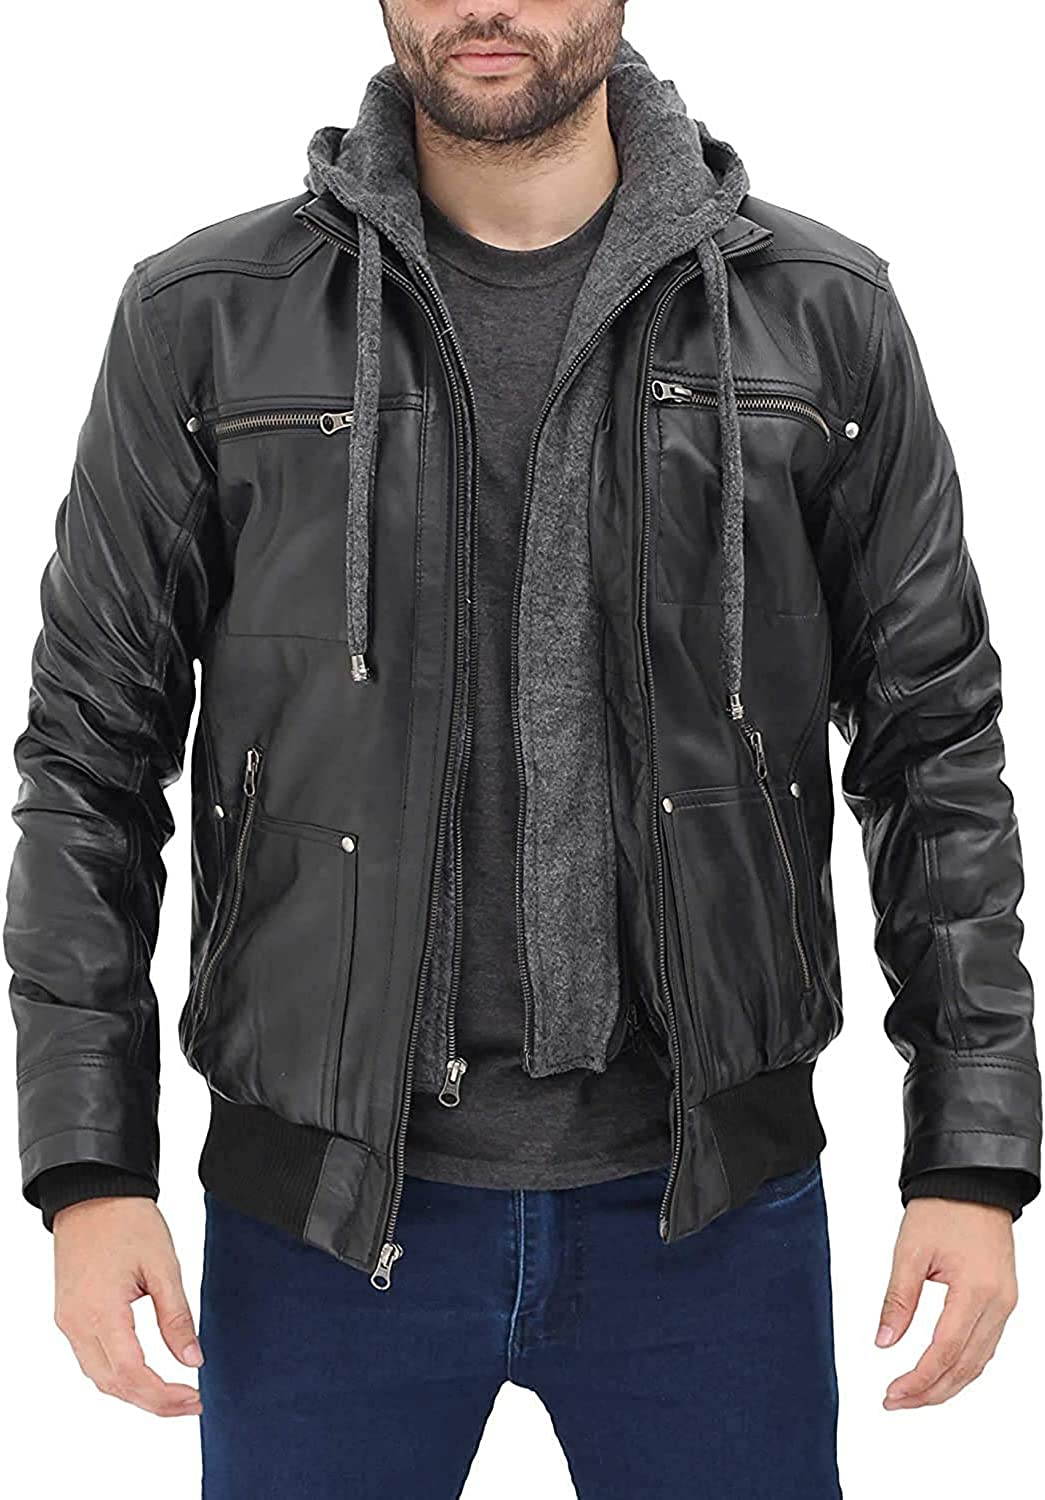 Hooded Leather Jackets for Men with Removable Hood - Mens Black Bomber Jacket